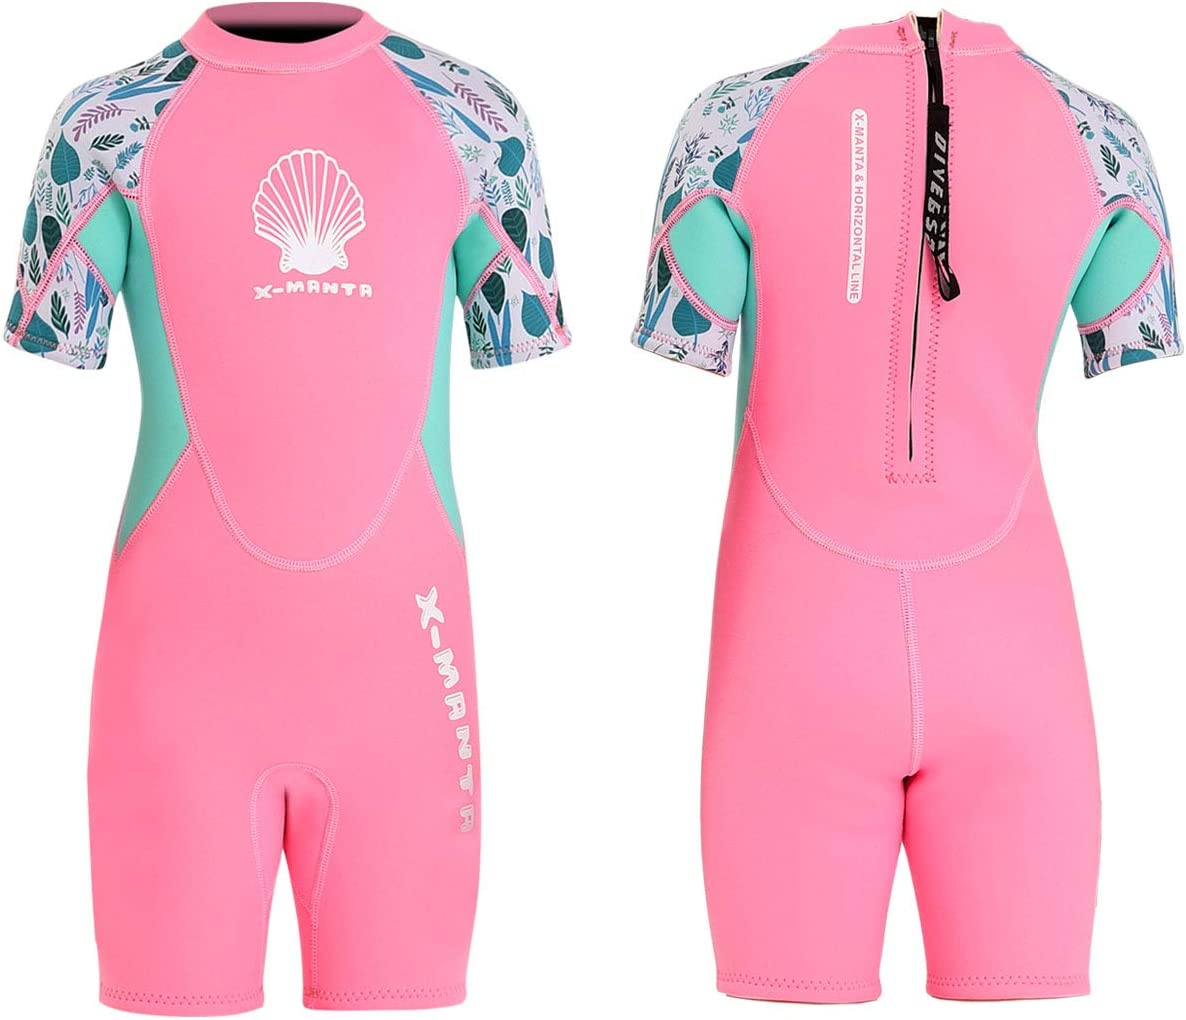 DIVESAIL Kids Wetsuit Brand Cheap Sale Venue Full High material Suits Girls N Boys 2.5mm Shorty